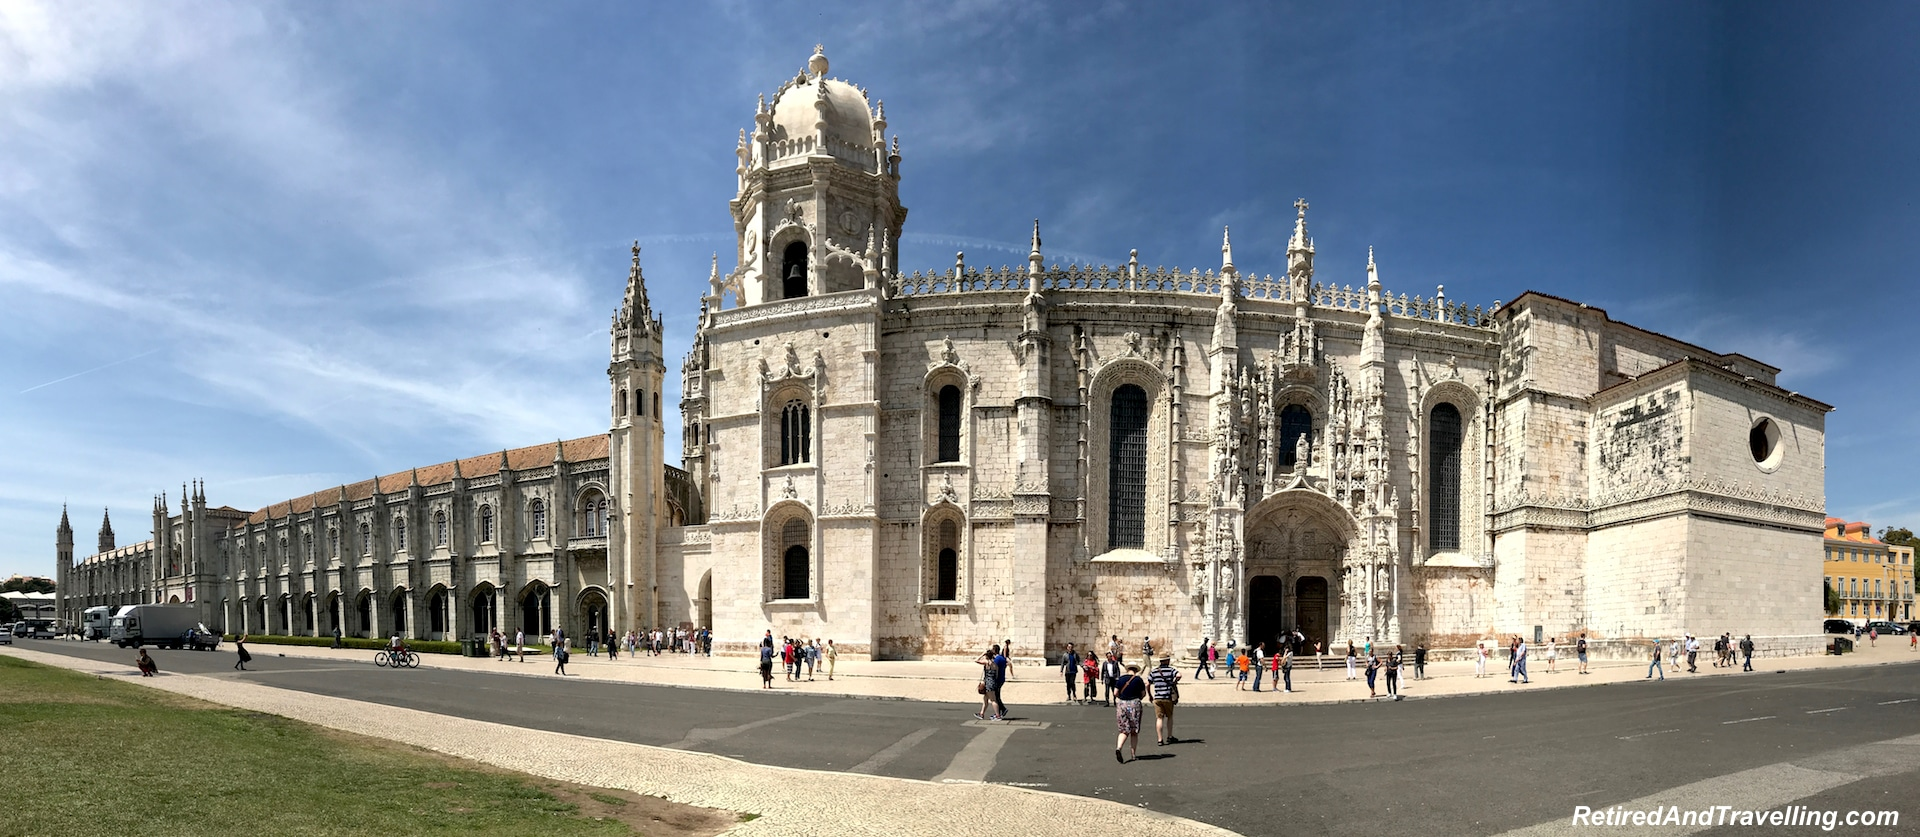 Jeronimos Monastery - Explore The Belem Area of Lisbon.jpg